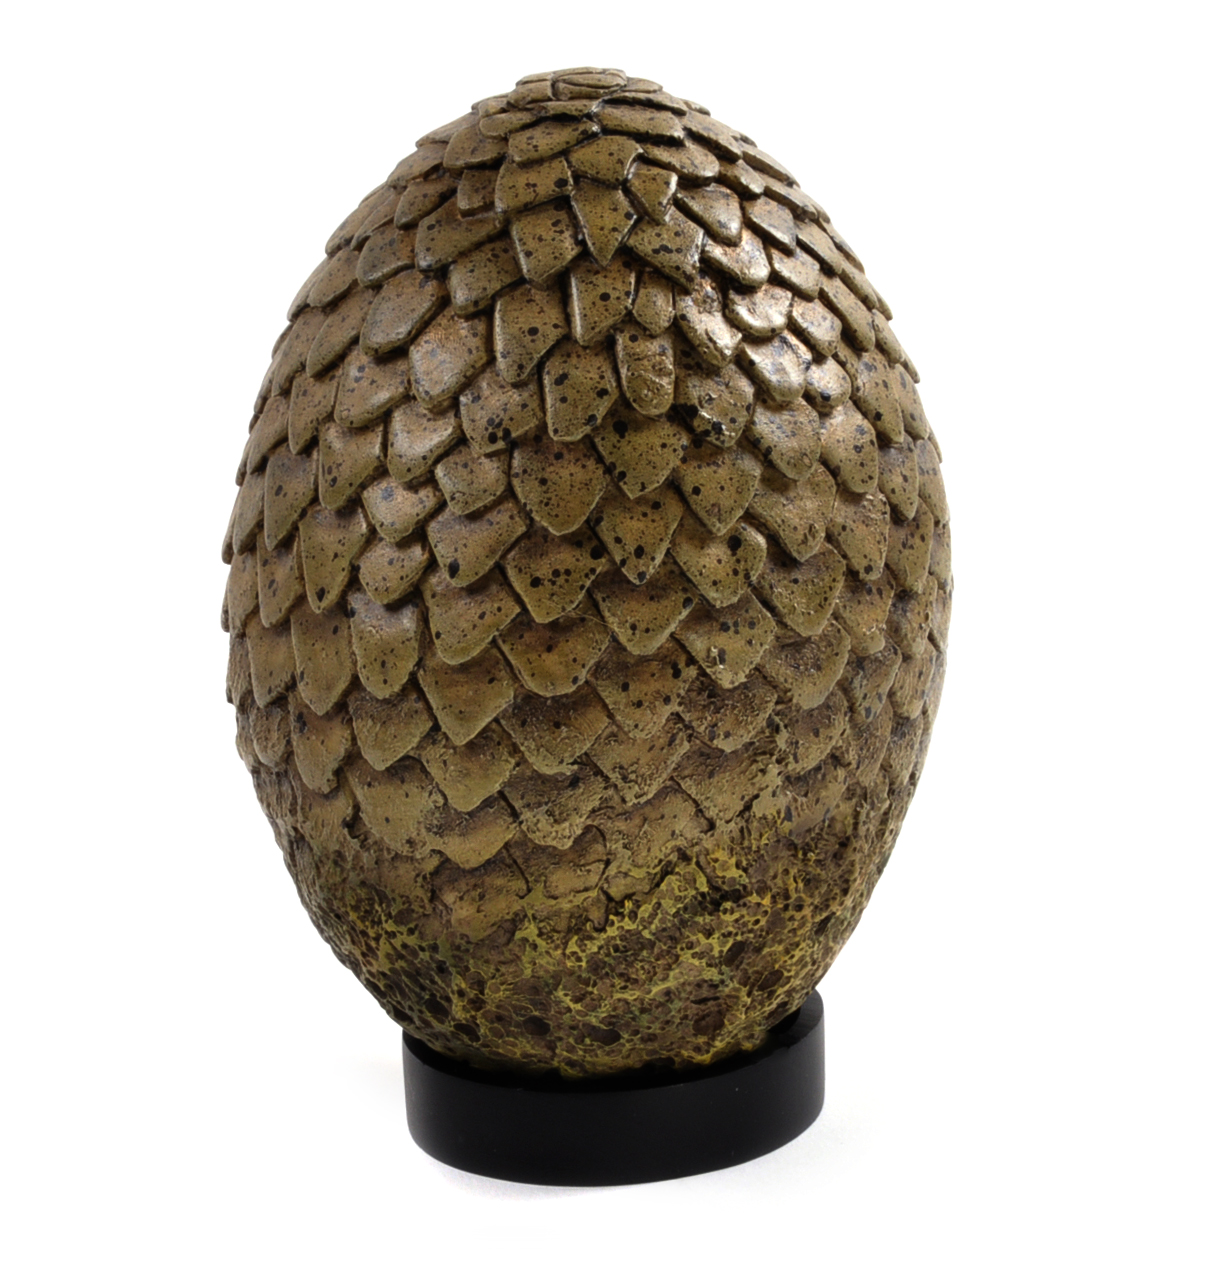 Viserion Dragon Egg The Game Of Thrones Replica Pink Cat Shop